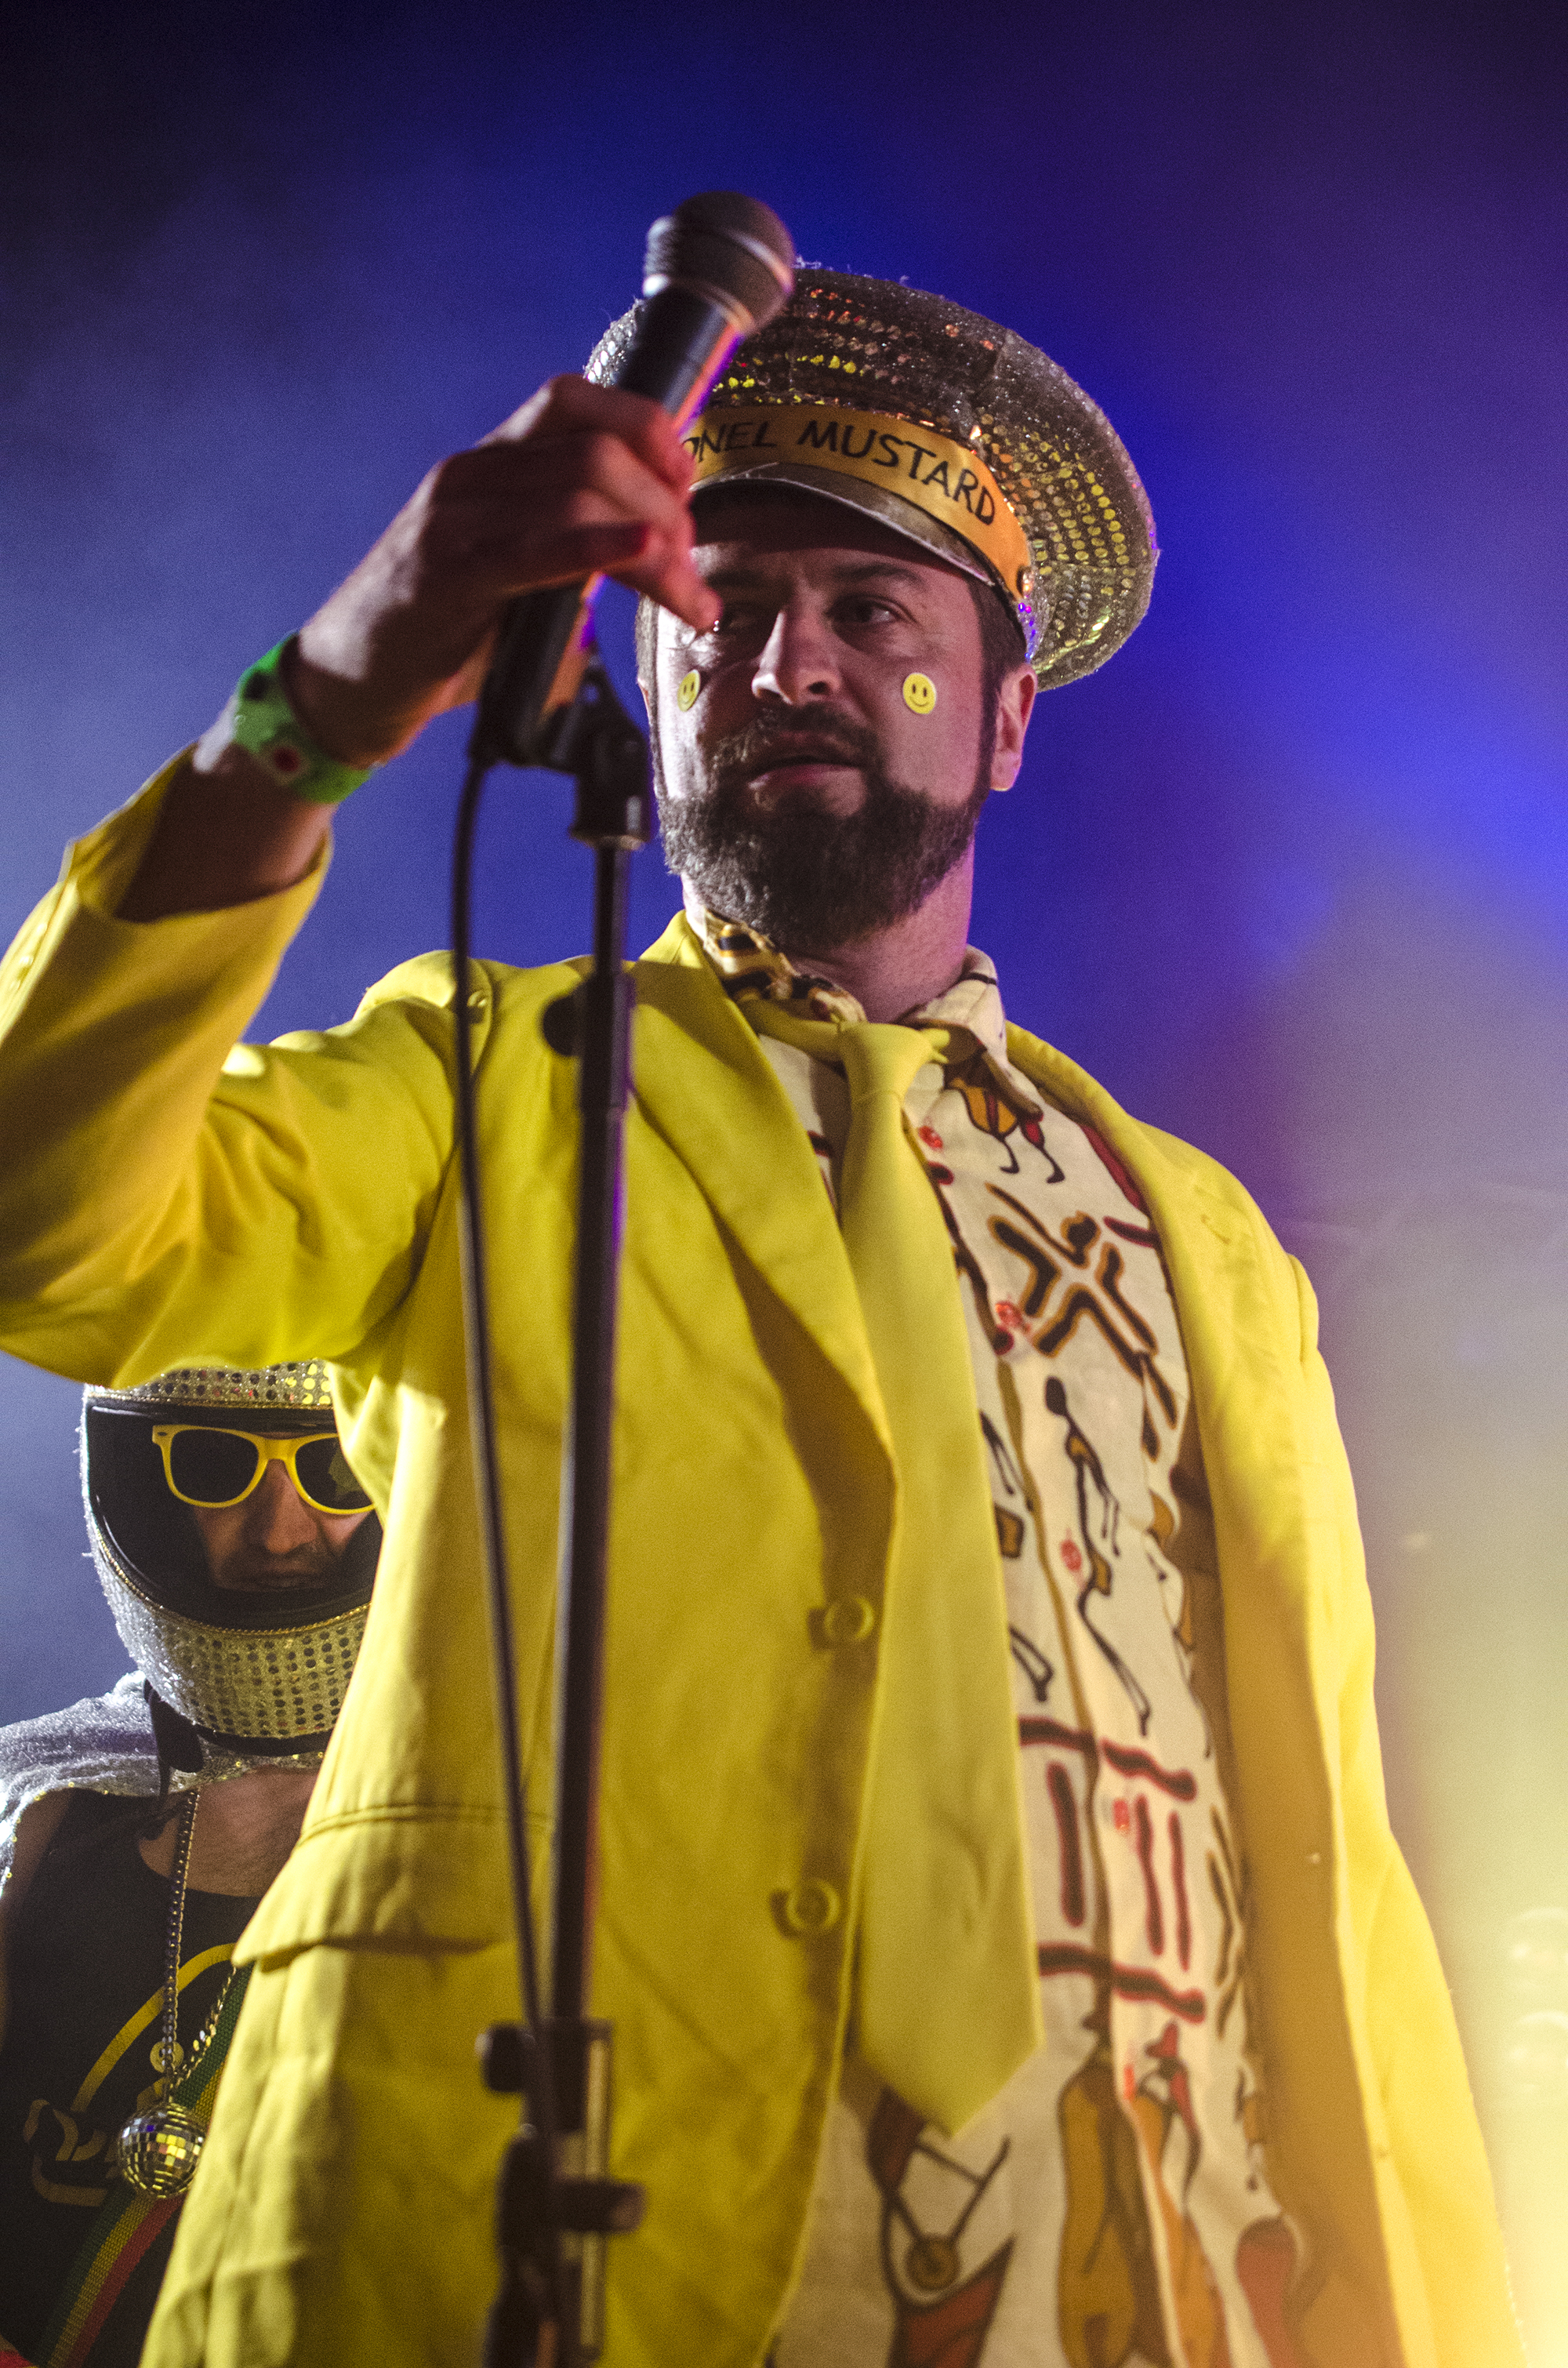 Liverpool Sound City 2017: Colonel Mustard And The Dijon 5